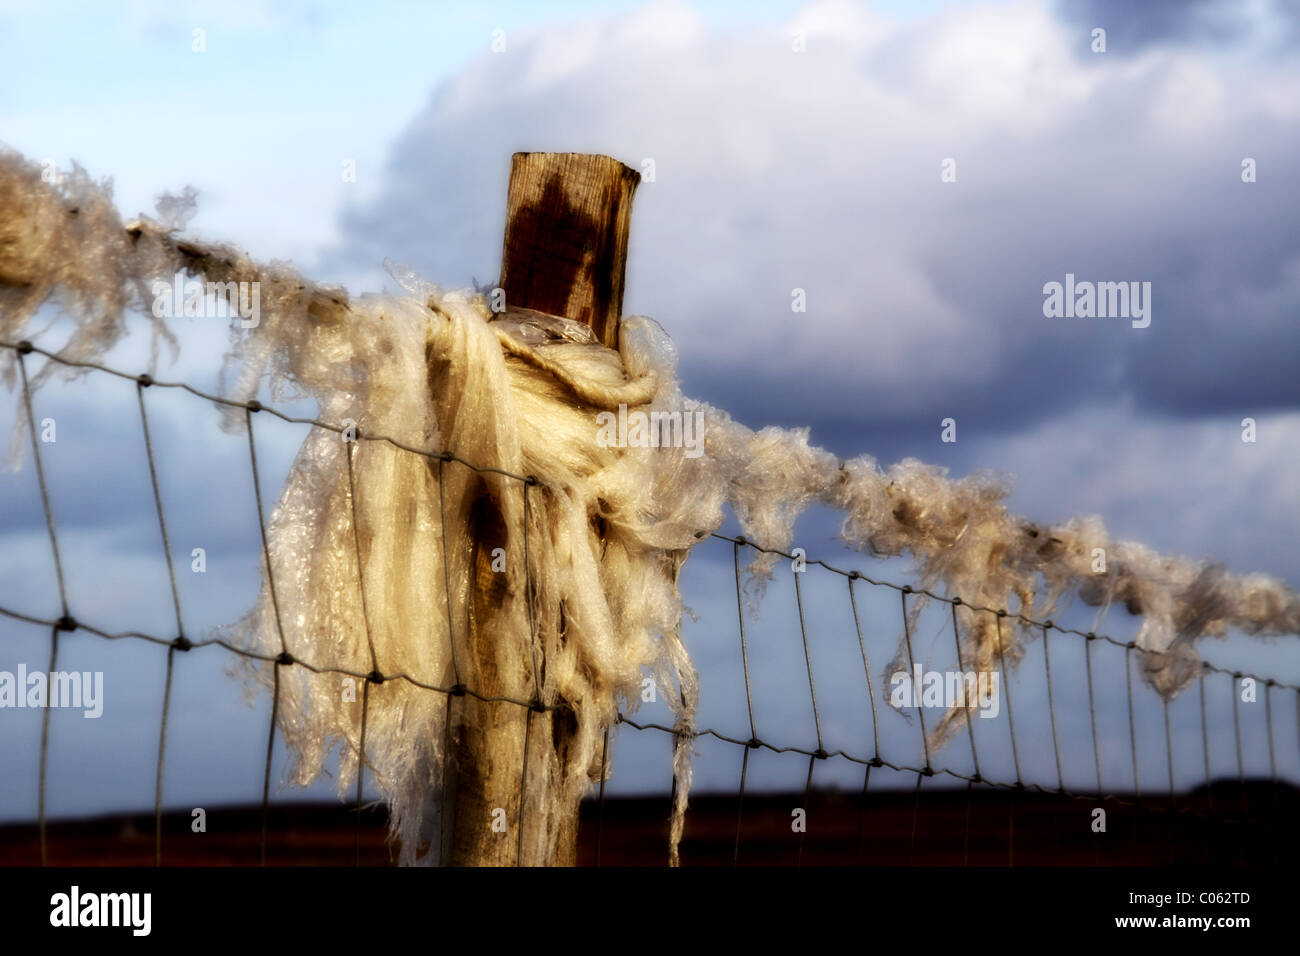 sheep wool wrapped around a fence post - Stock Image